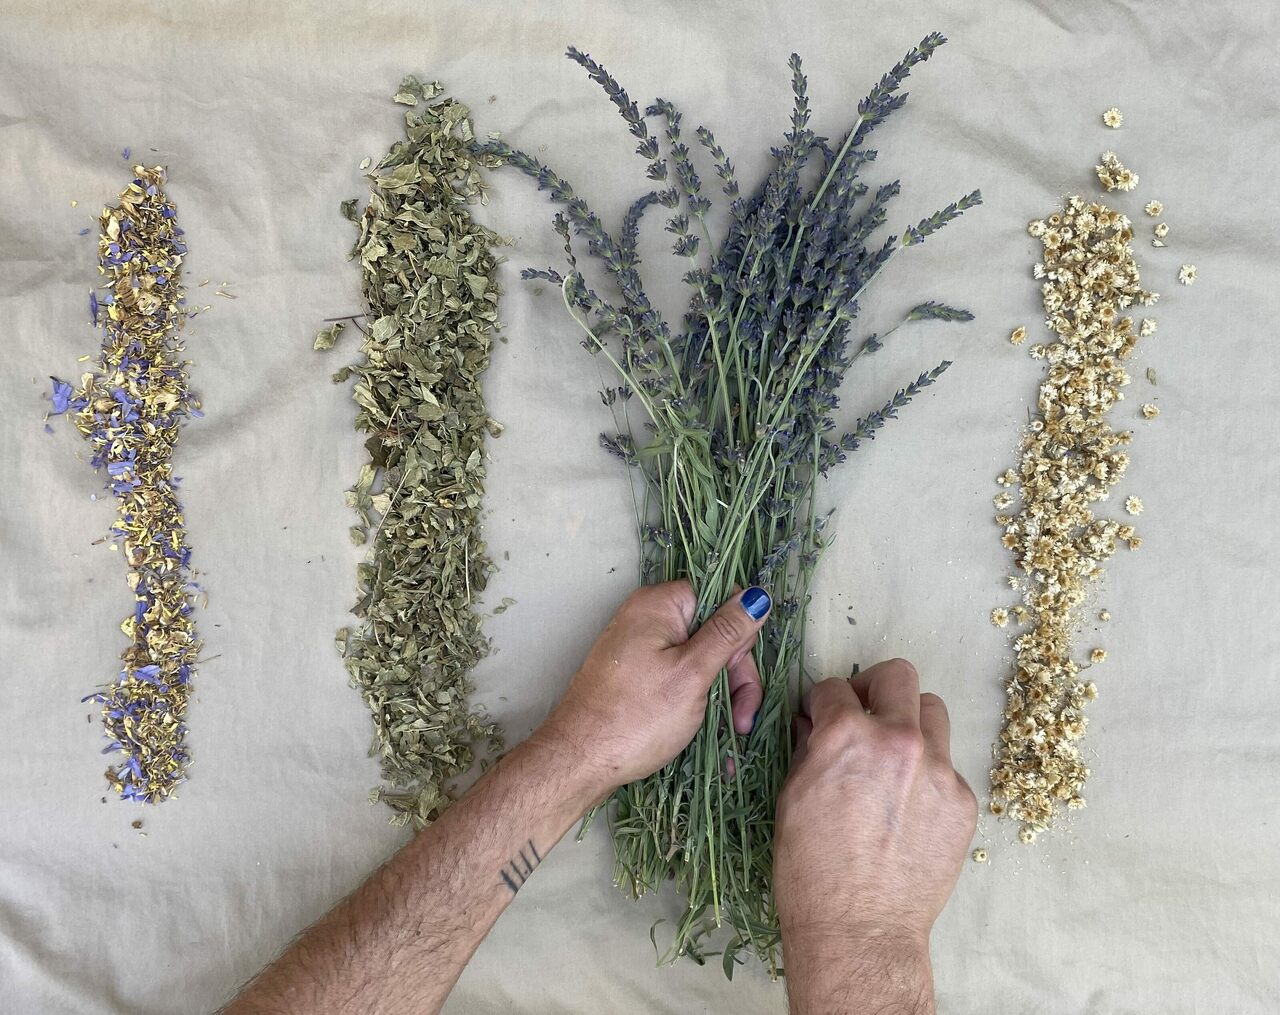 David Shorter prepares herbs from his garden to make tinctures. From left to right: blue lily flowers, calea zacatechichi, lavender, and gordolobo.